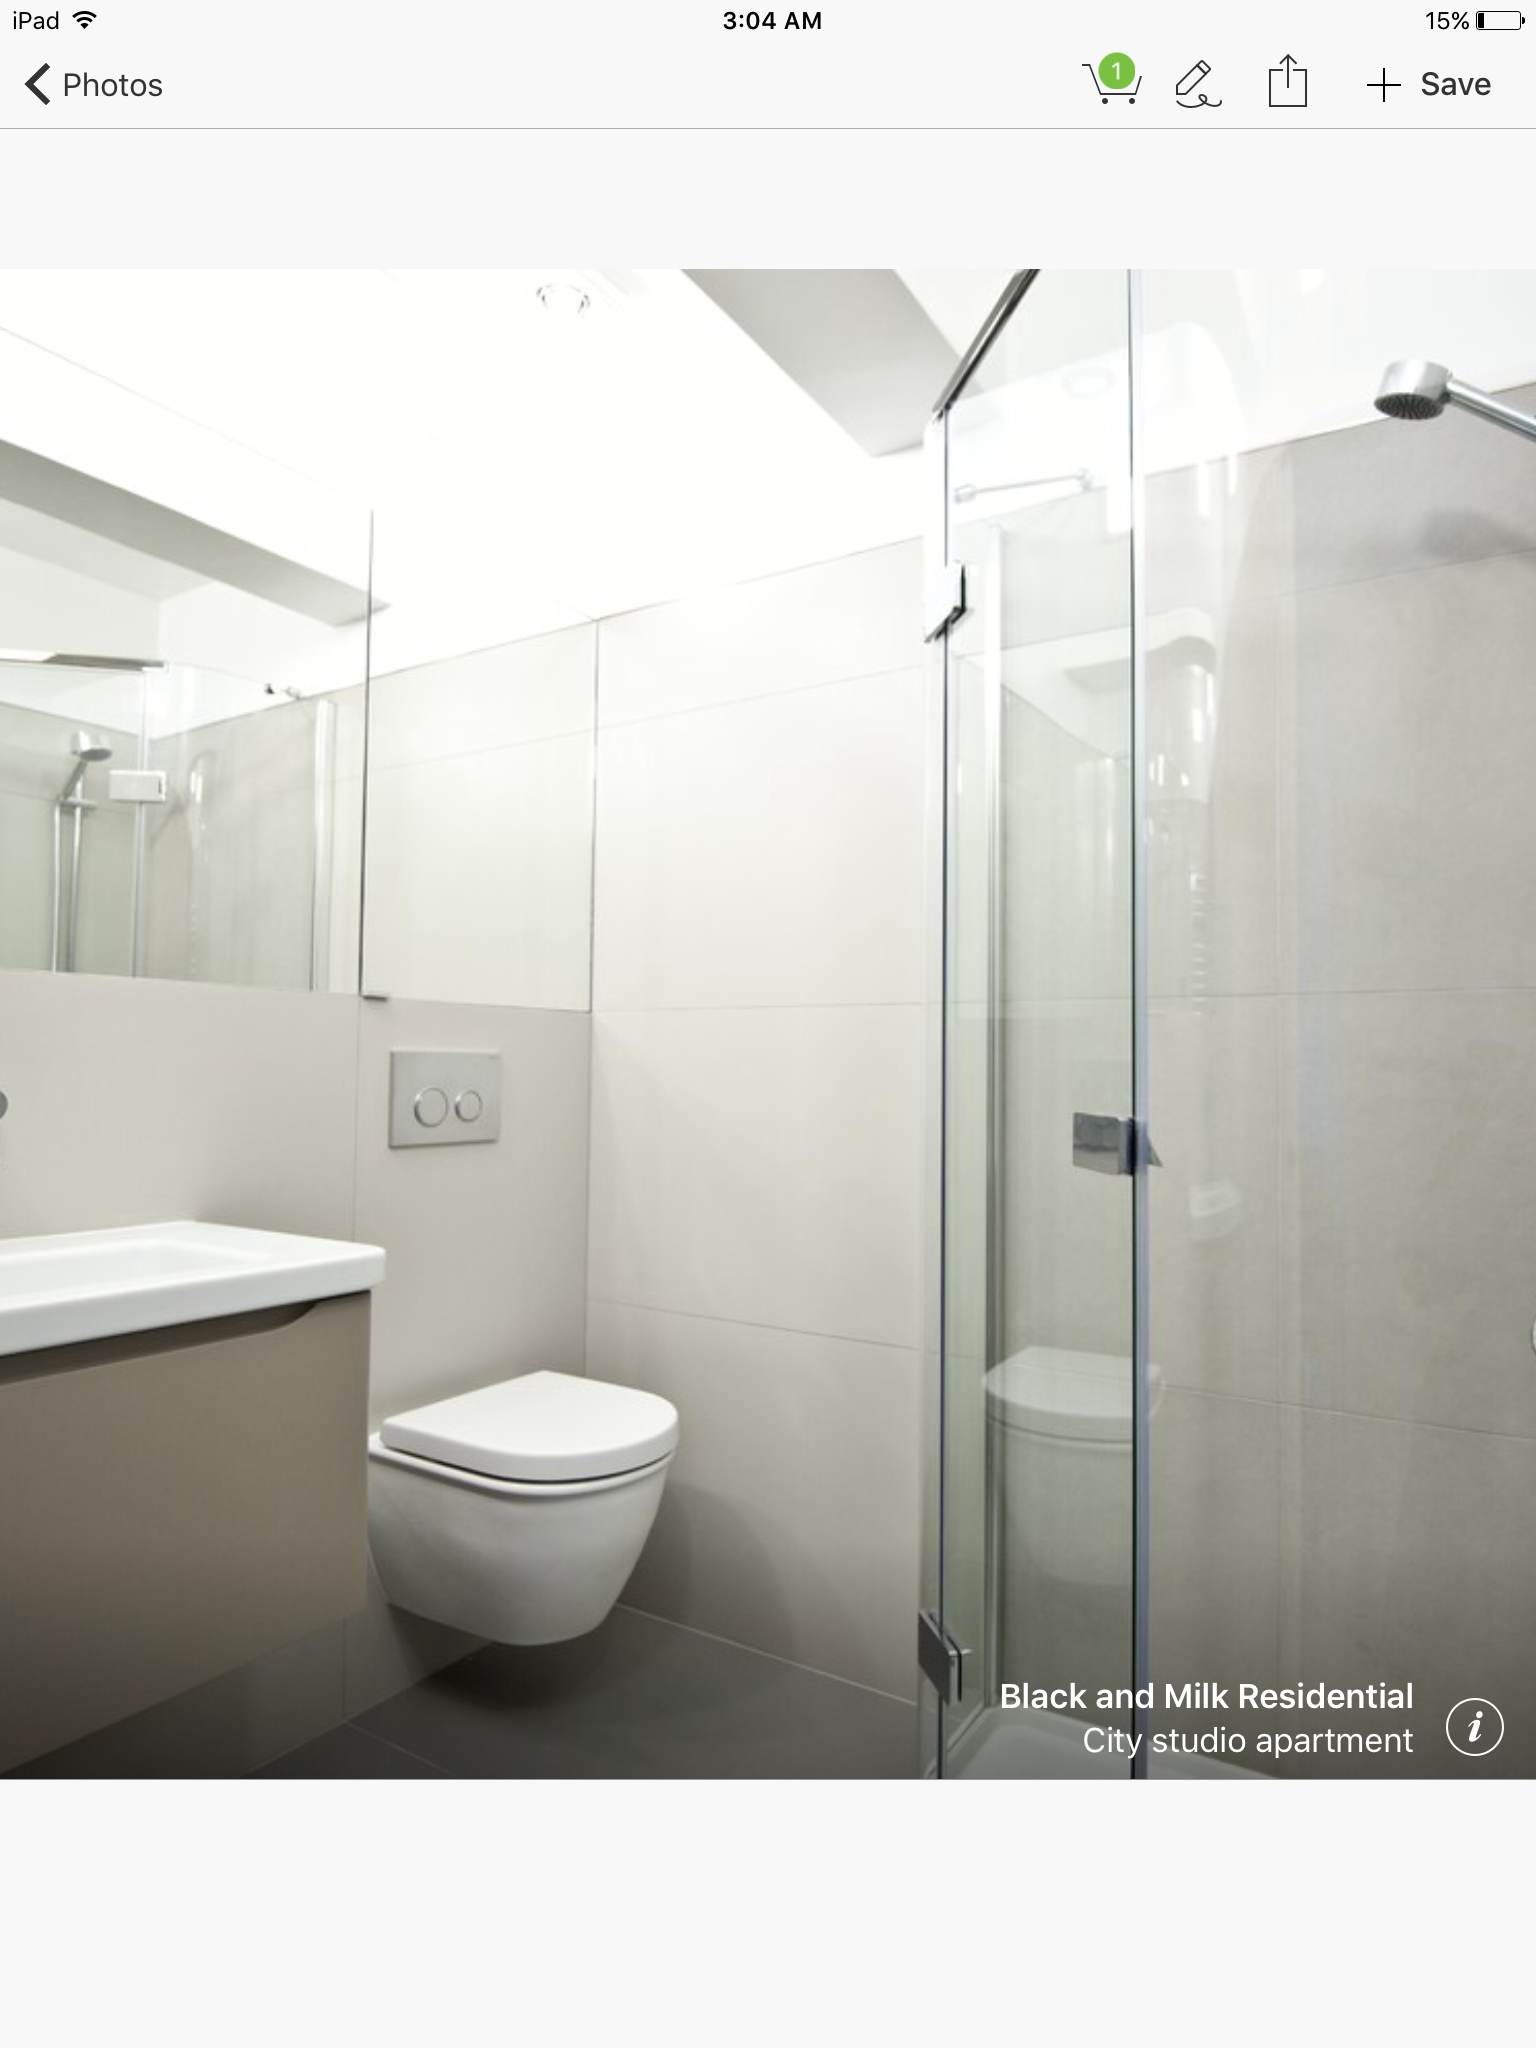 new bathroom images%0A Space saving interior design project for London developers  this small  studio flat in Central London included a new kitchen  new bathroom   decorating and